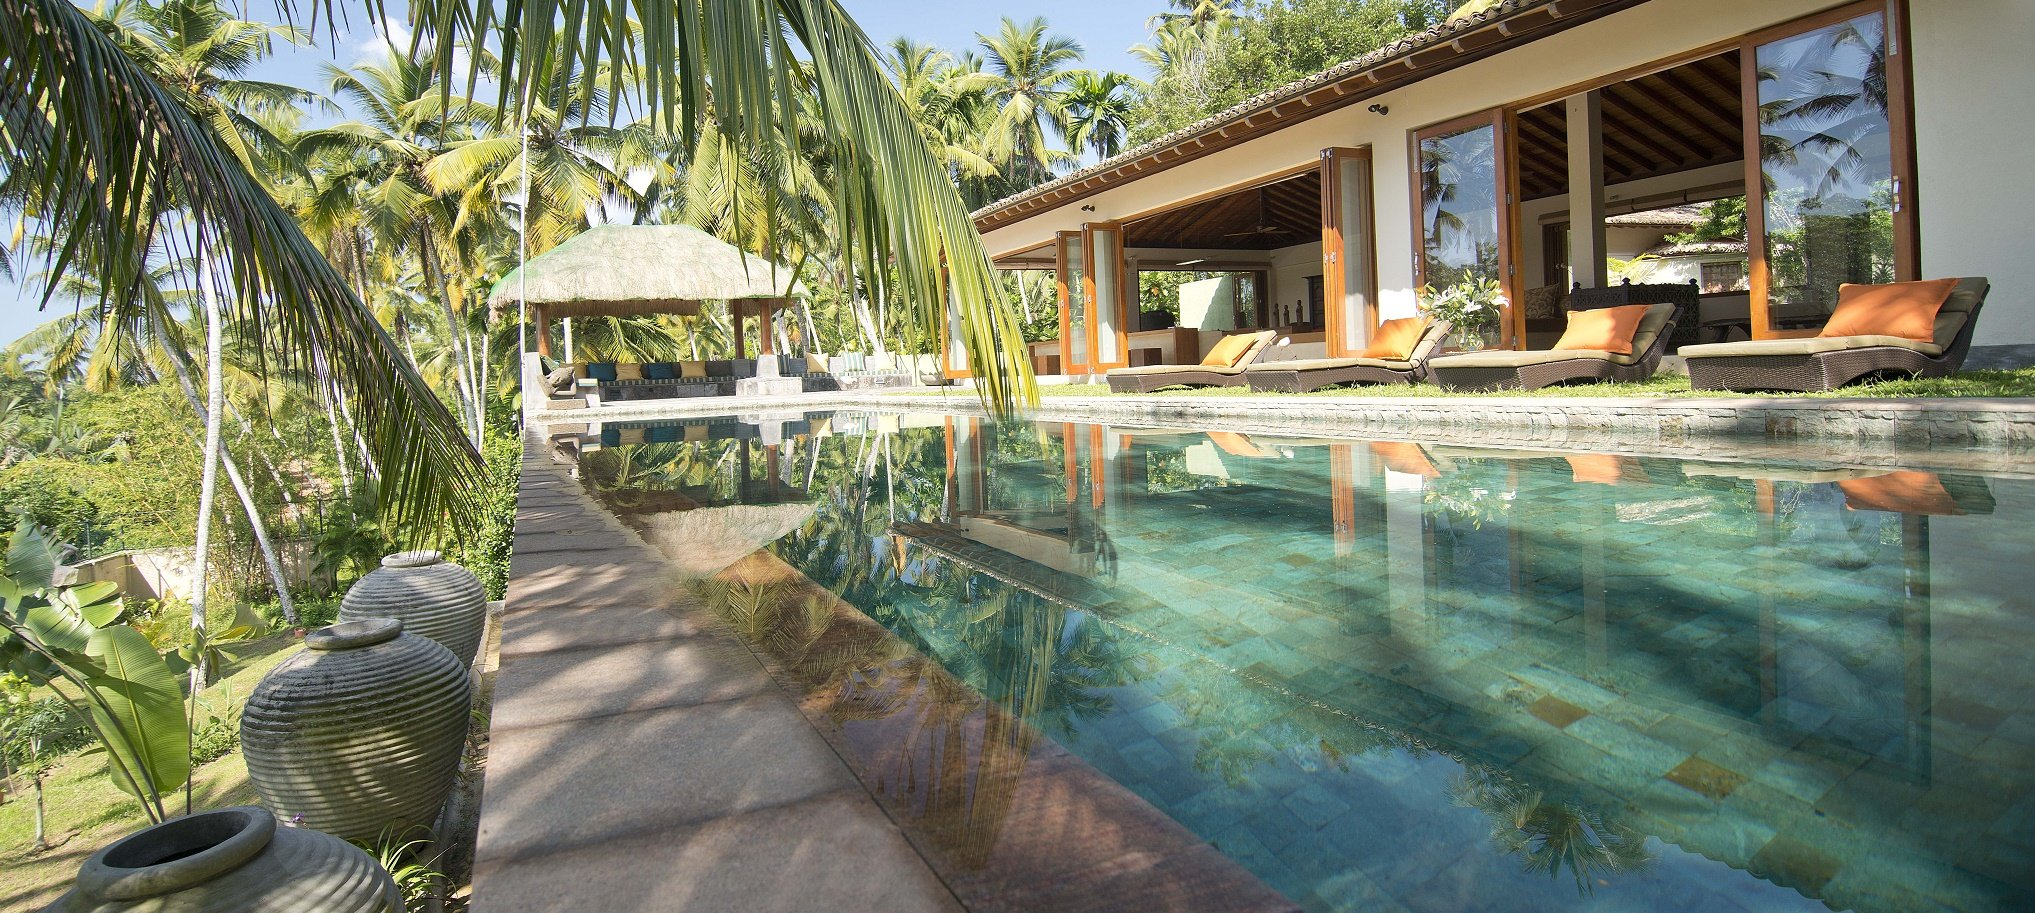 holiday Villa in Galle Sri Lanka